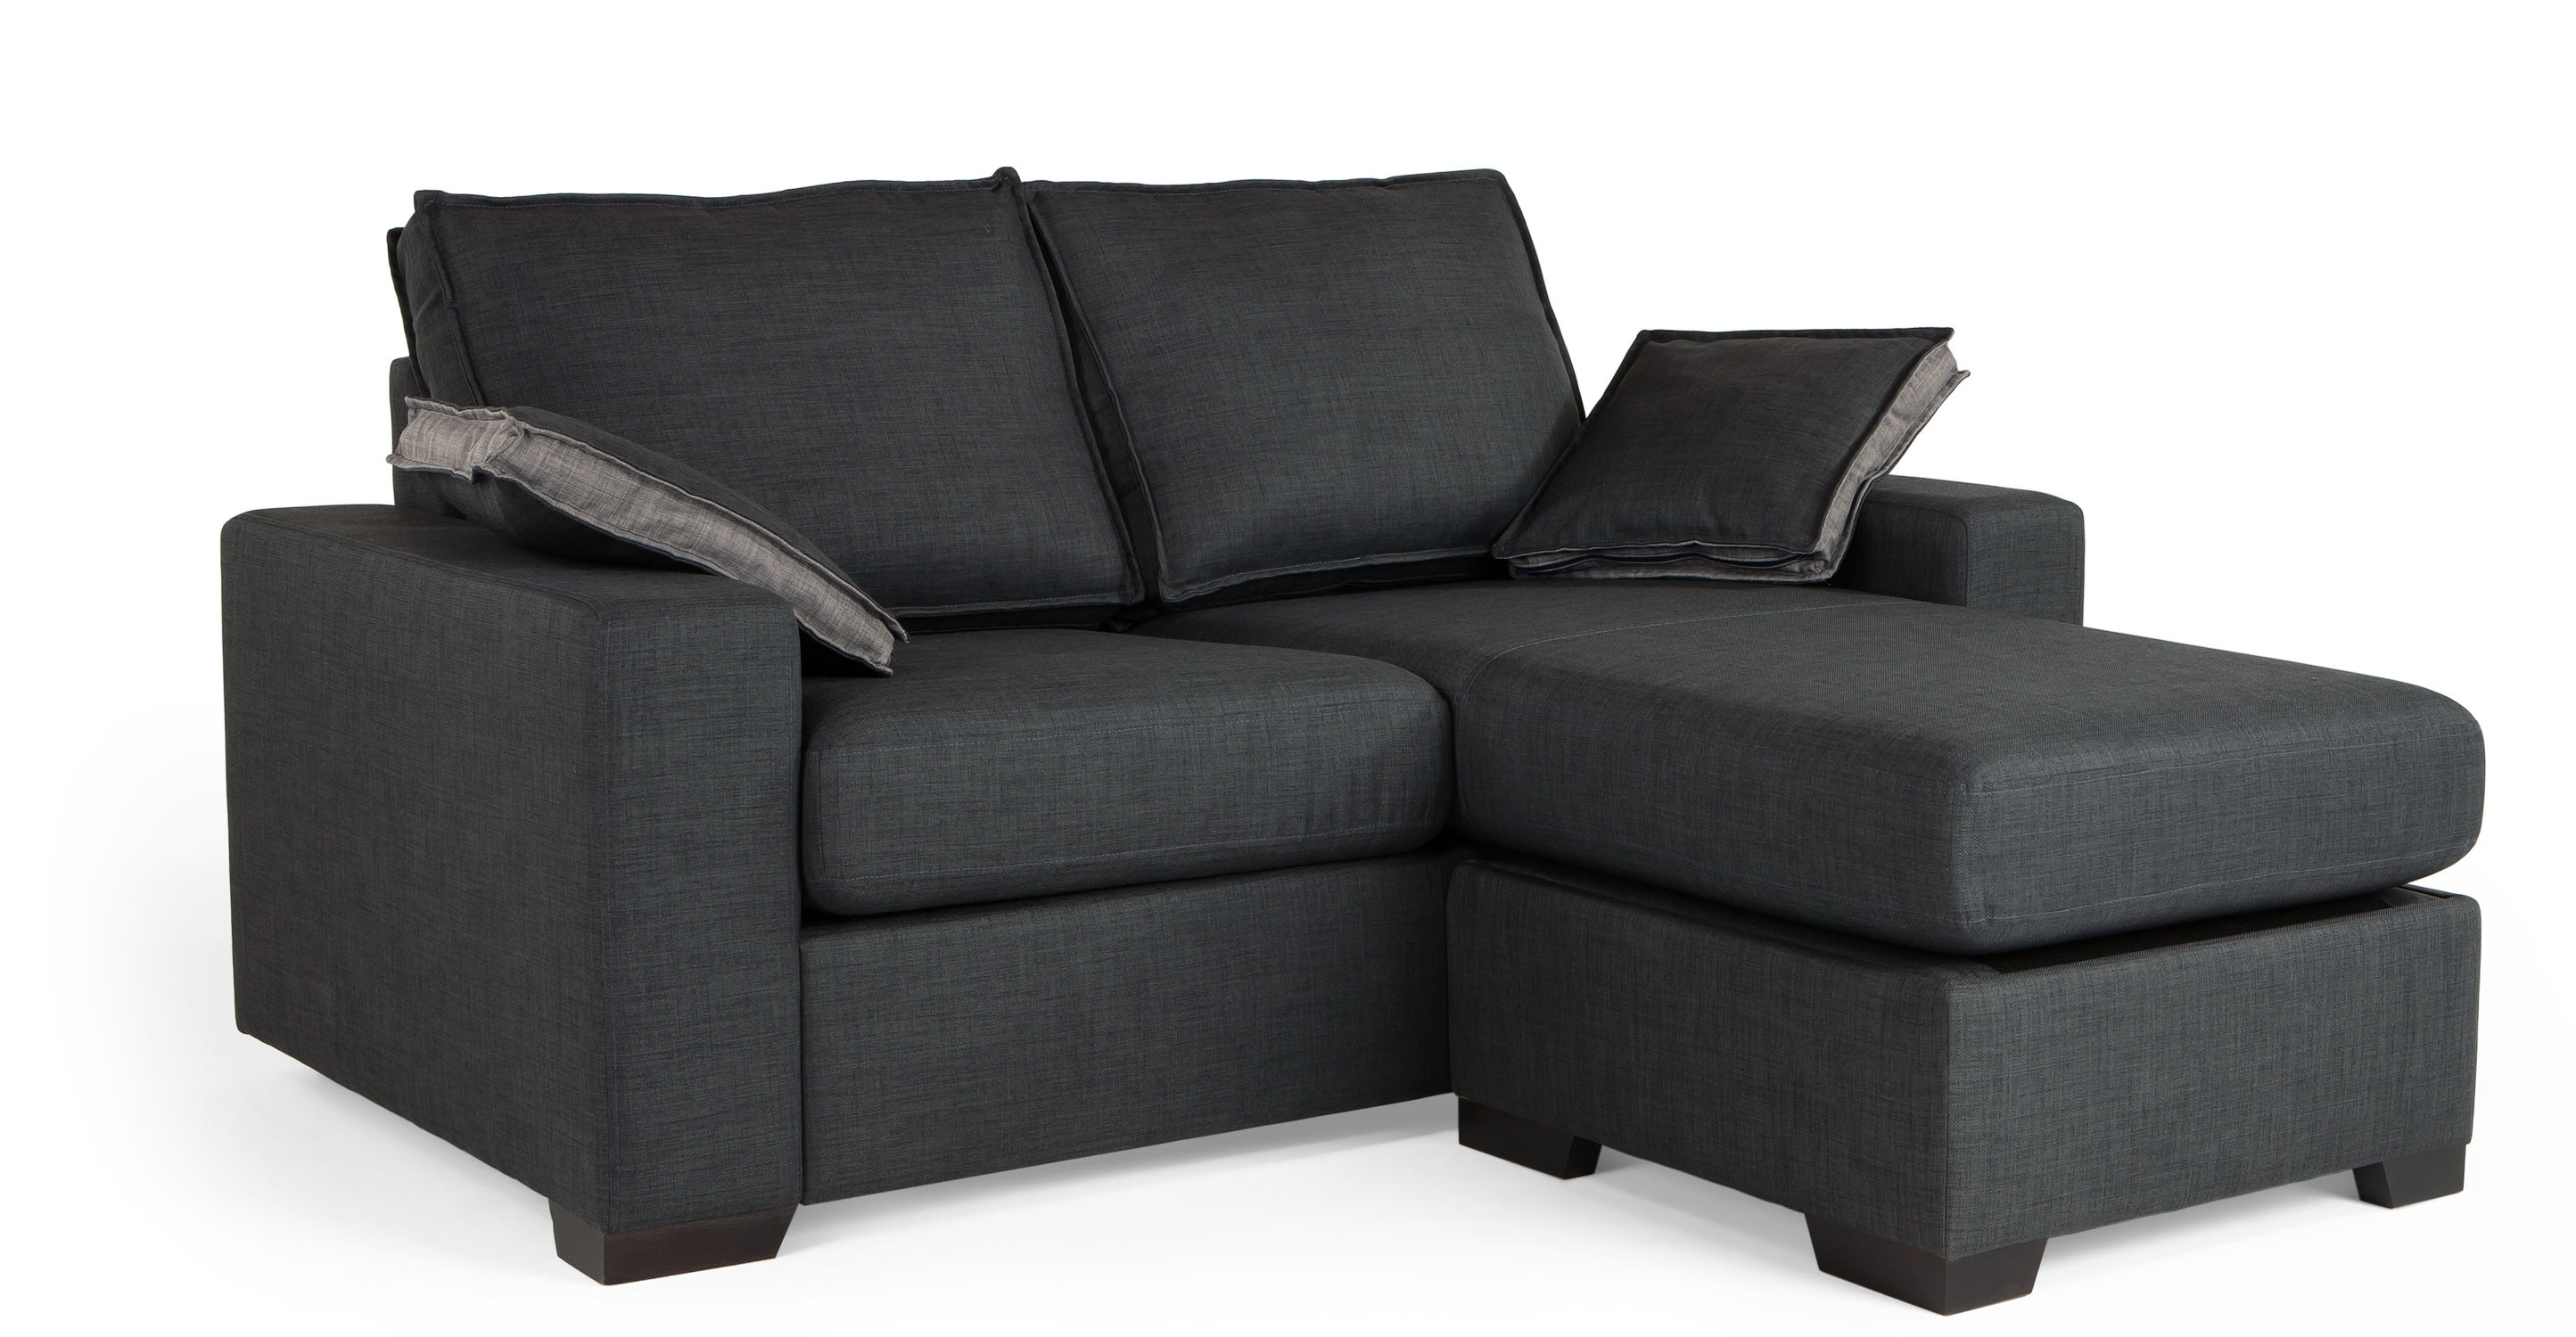 Famous Sectional Sofa Design: Recomendation Sofa Bed Sectionals Hide A Within 2 Seat Sectional Sofas (View 10 of 20)